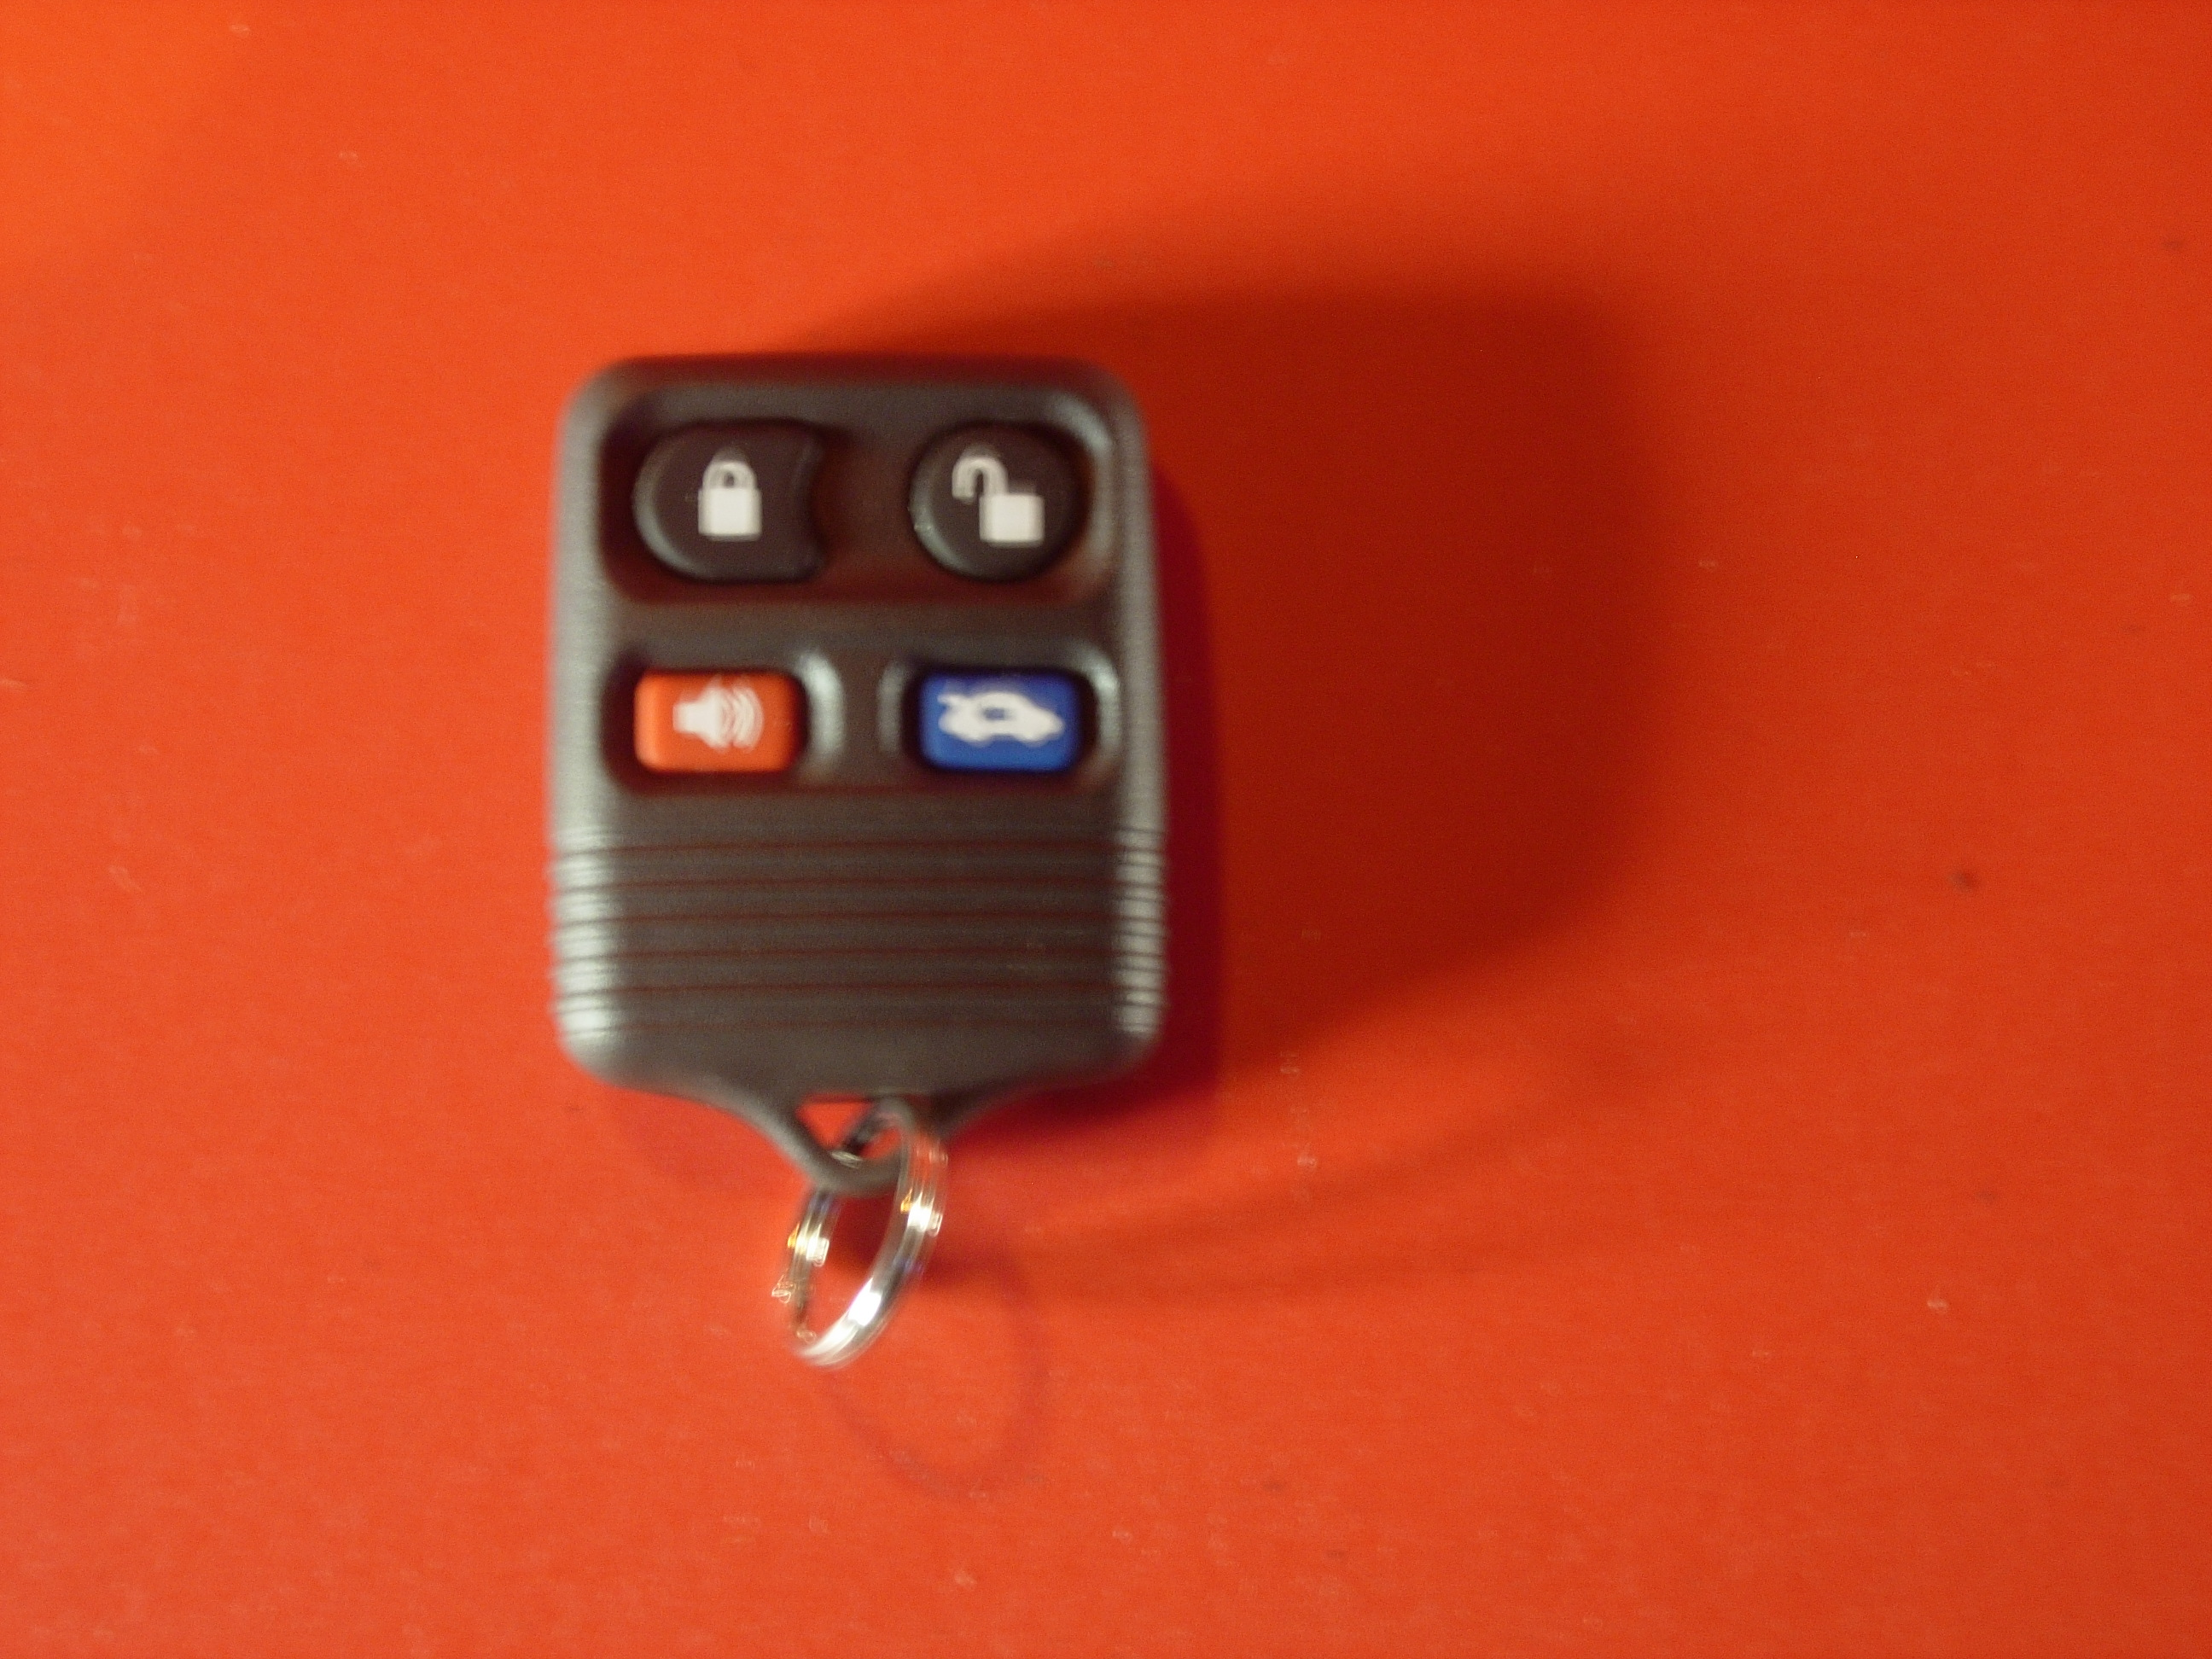 Keyfob remote for Expedition inc programing instructions